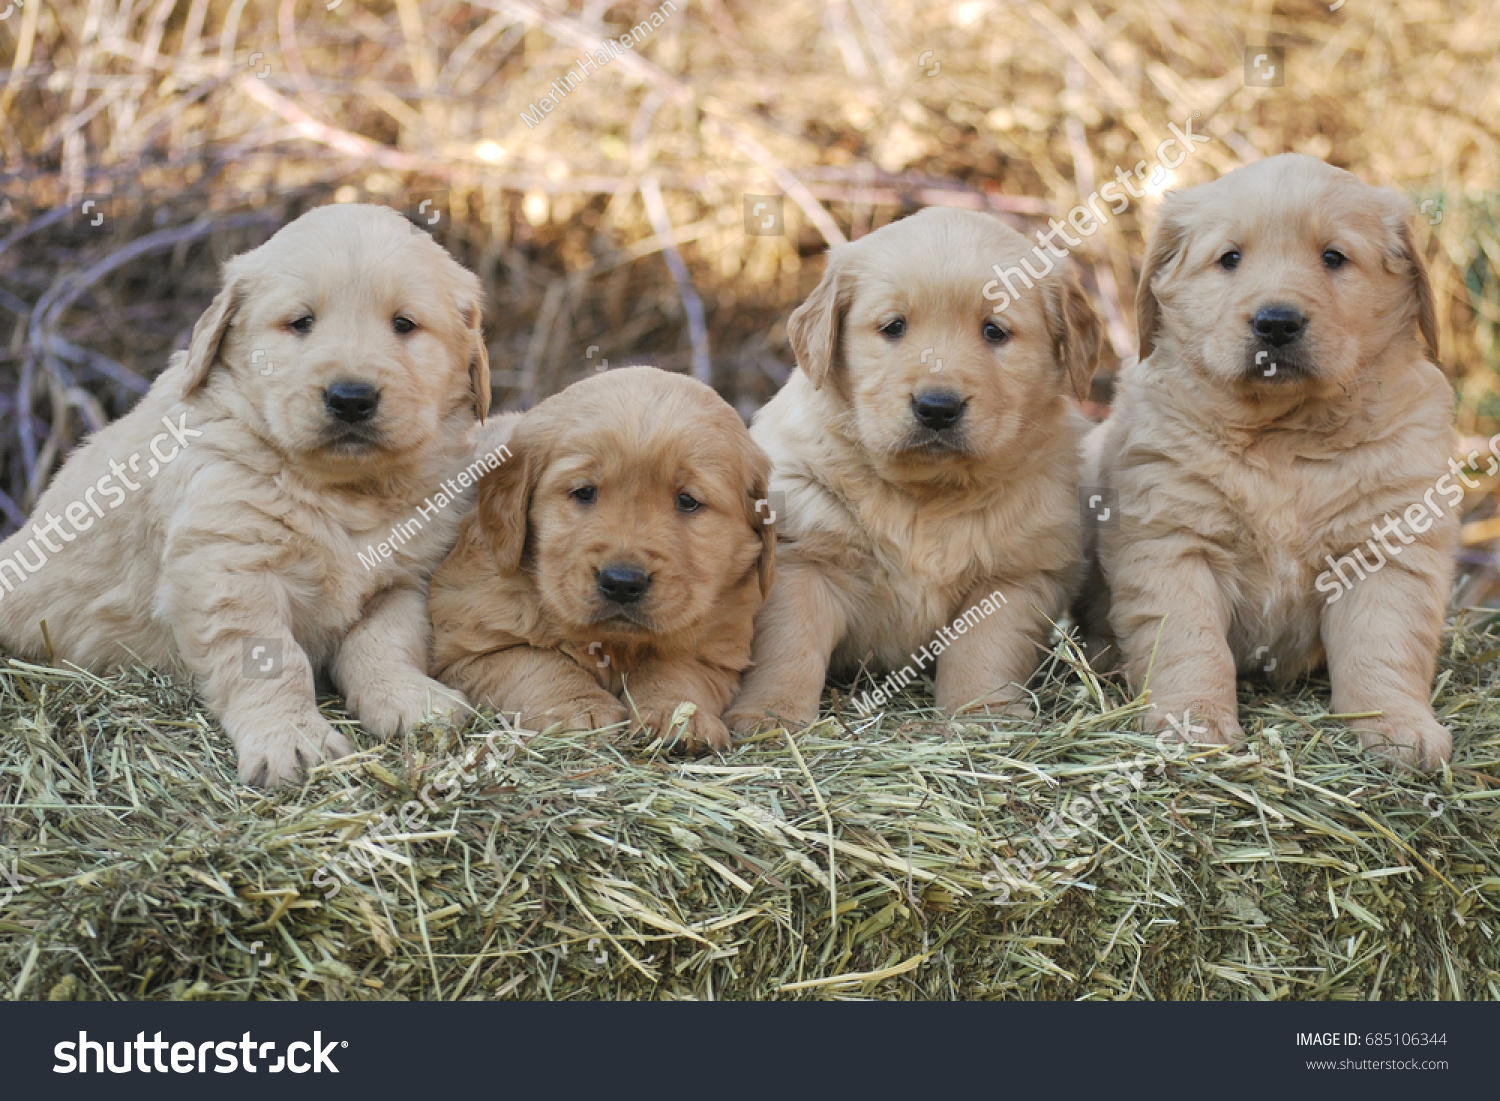 Litter Golden Retriever Puppies Sitting On Stock Photo Edit Now 685106344